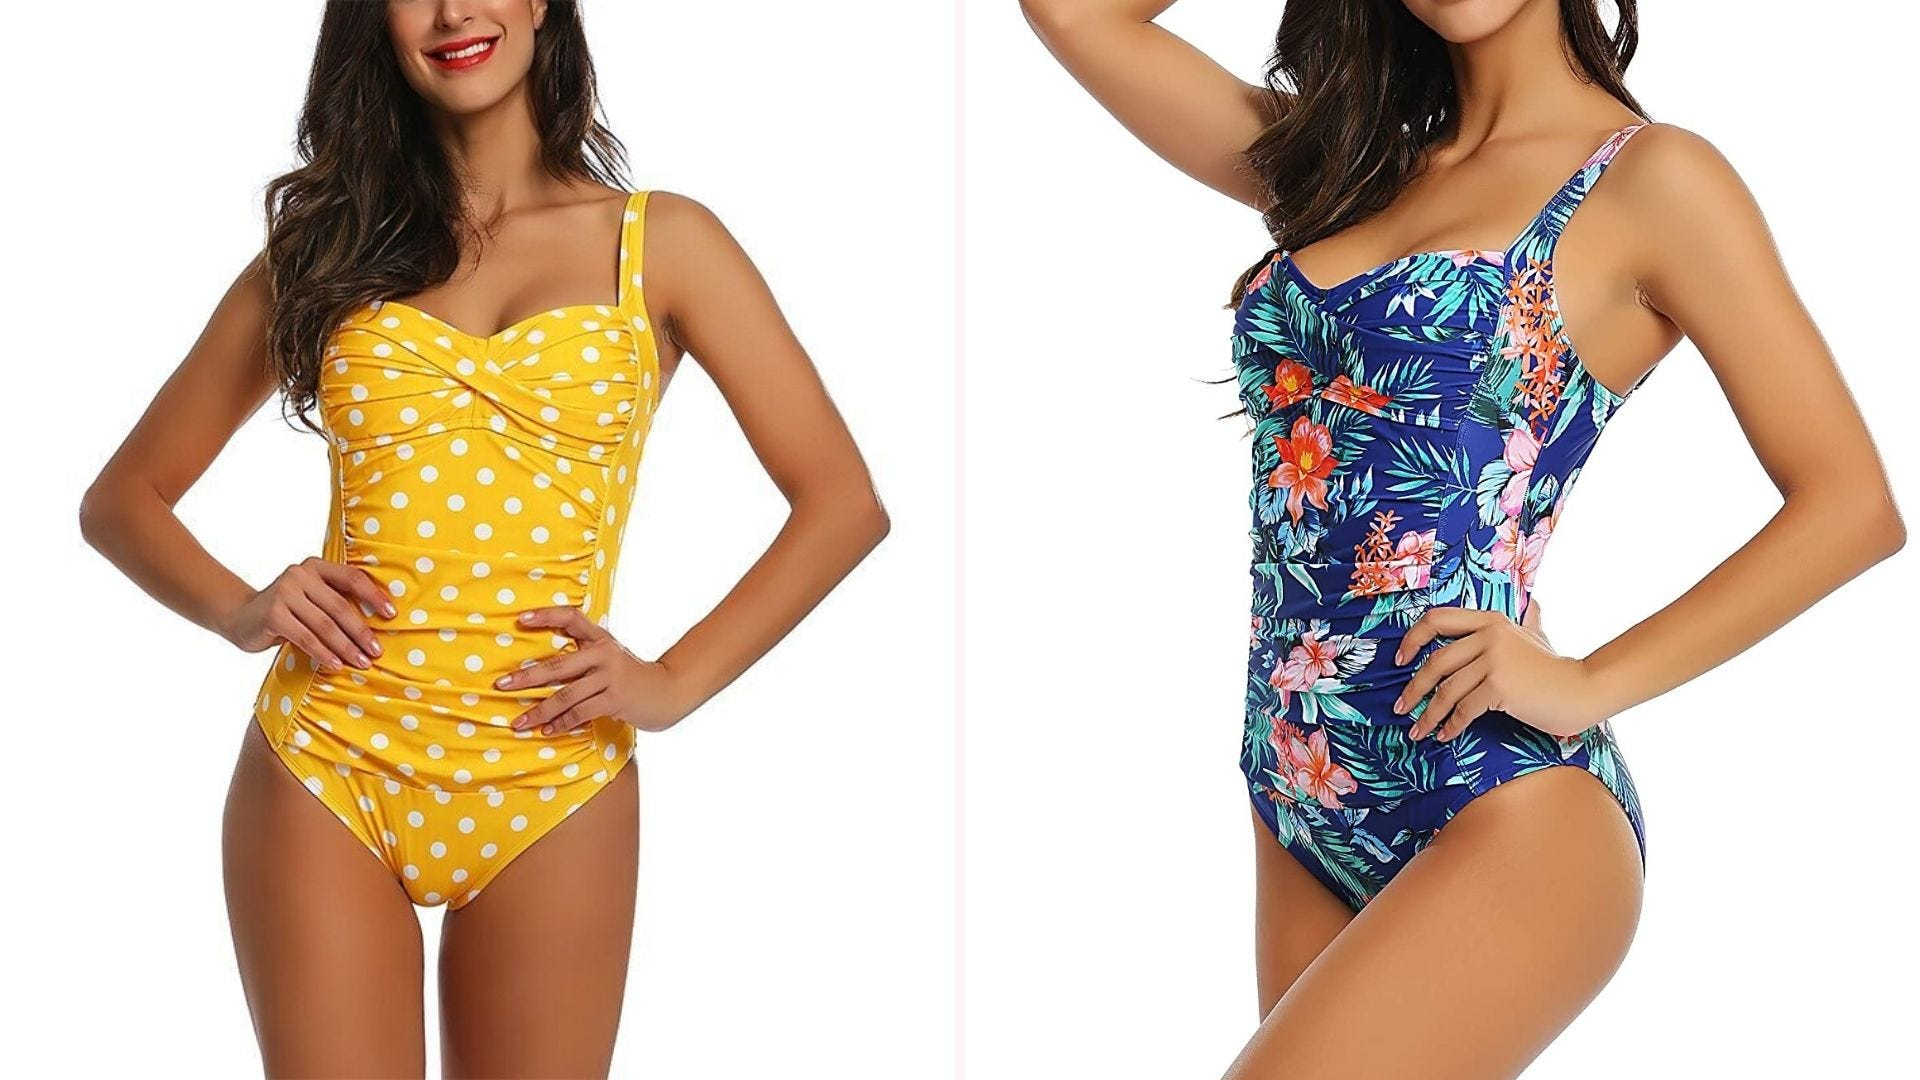 A woman in a yellow polka dot one-piece swimsuit; a woman in a blue floral swimsuit